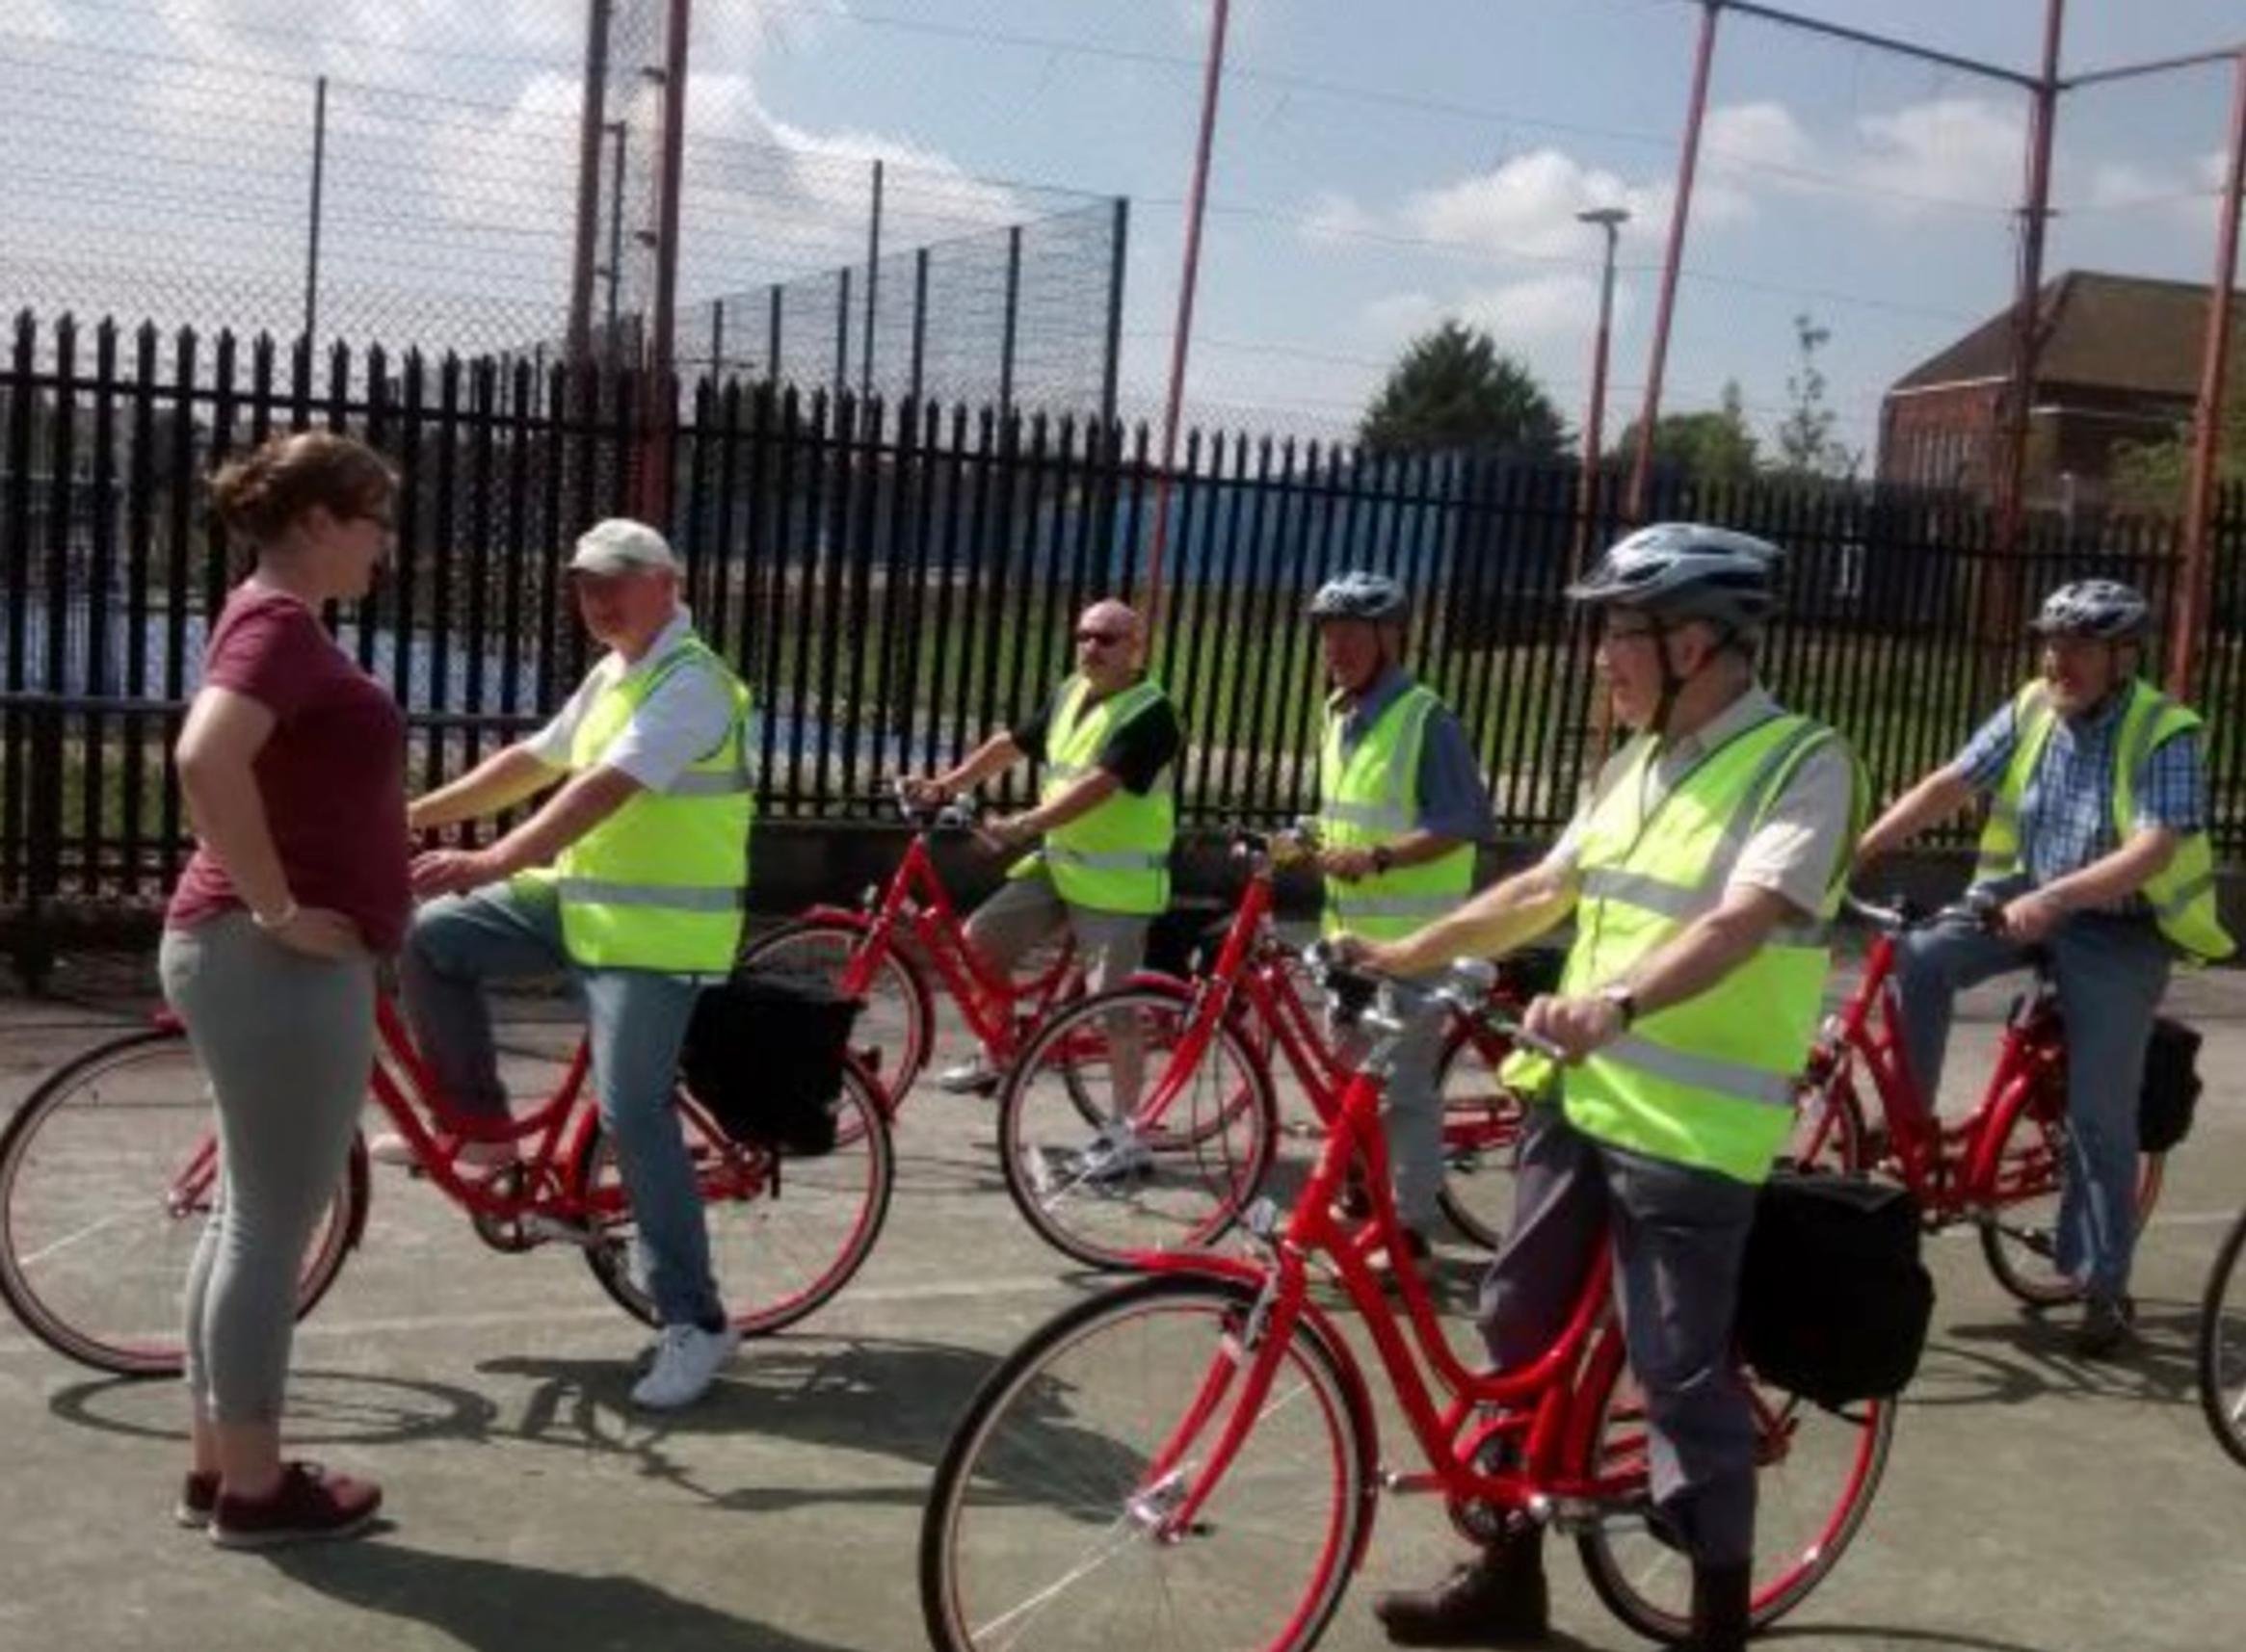 East Belfast Wise Men's Shed signed up to the Community Active Travel Programme